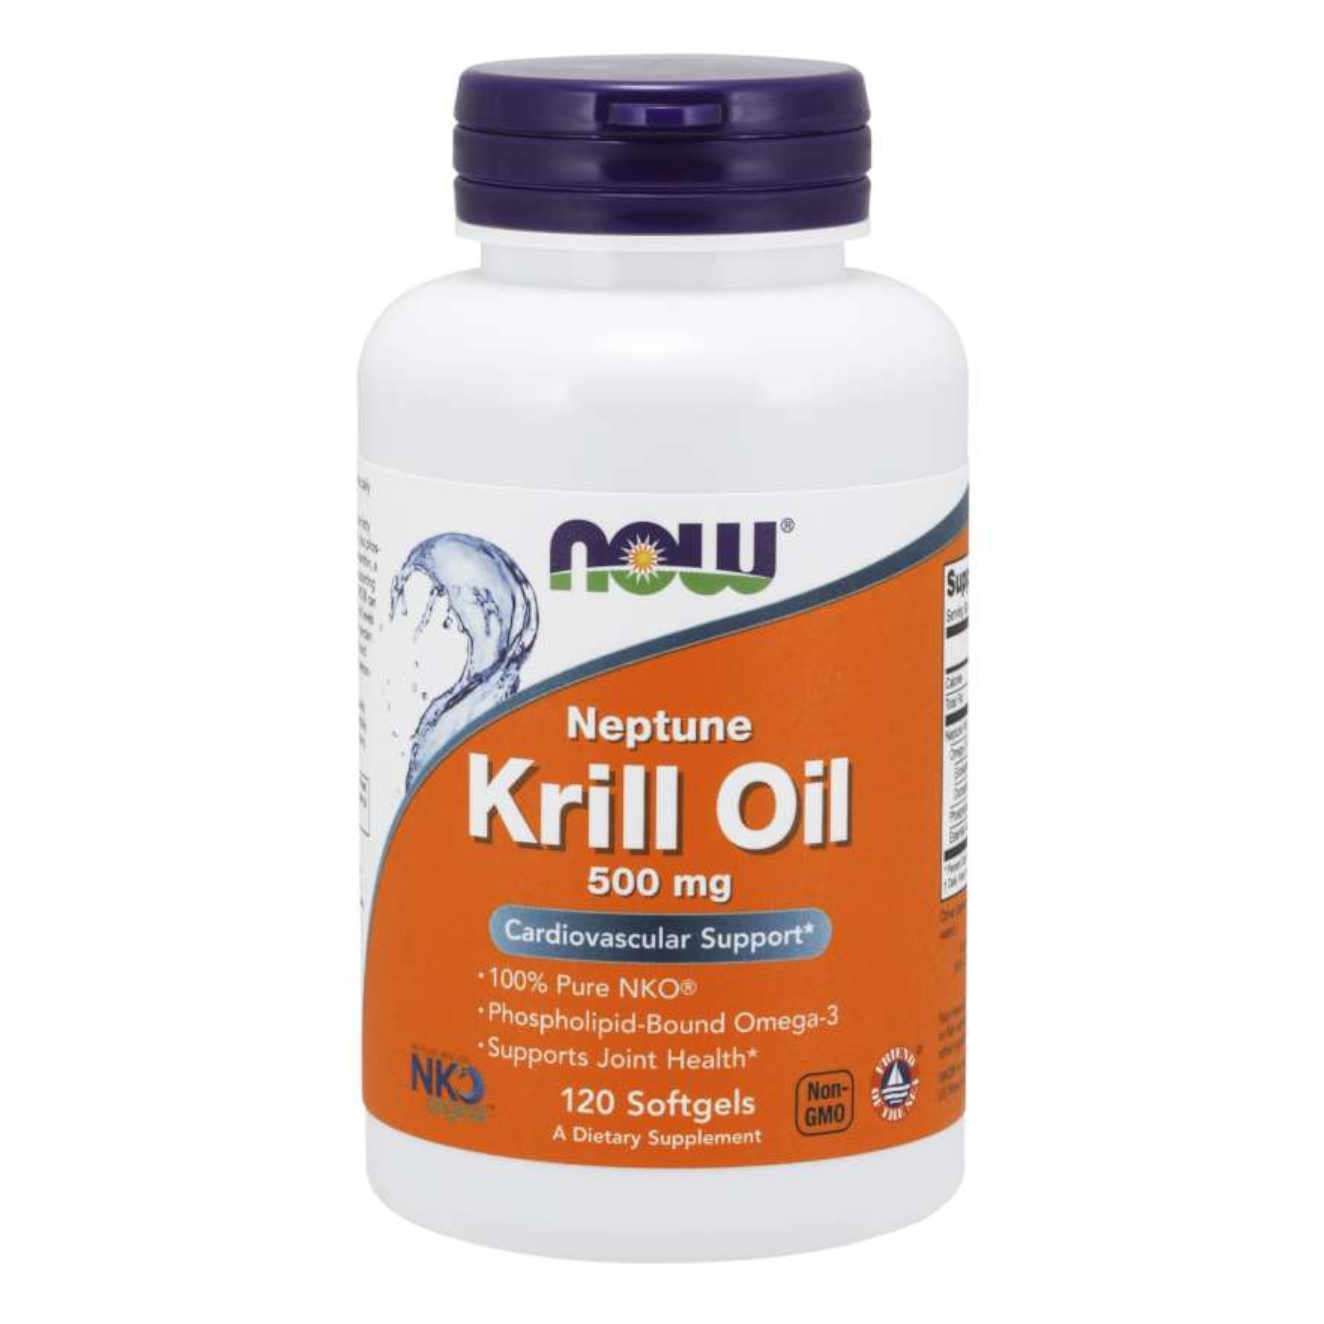 NEPTUNE KRILL OIL 500mg - 120 softgels